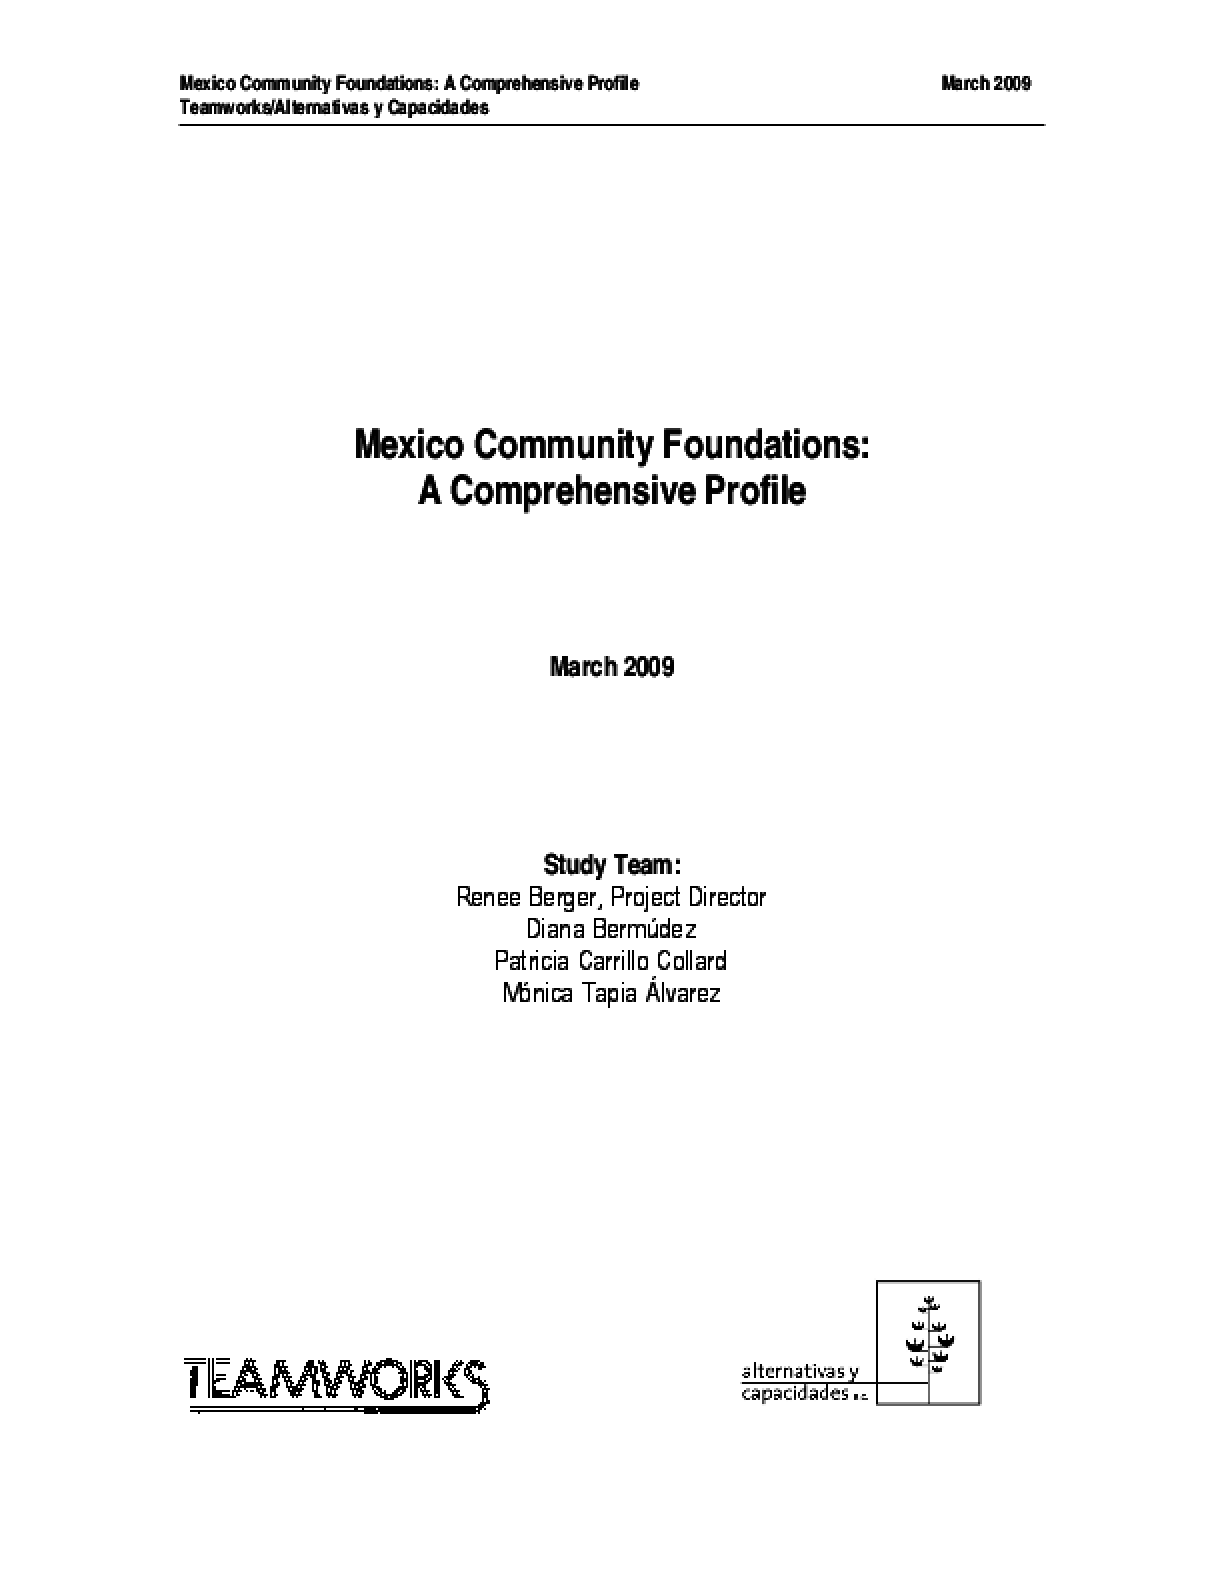 Mexico Community Foundations: A Comprehensive Profile